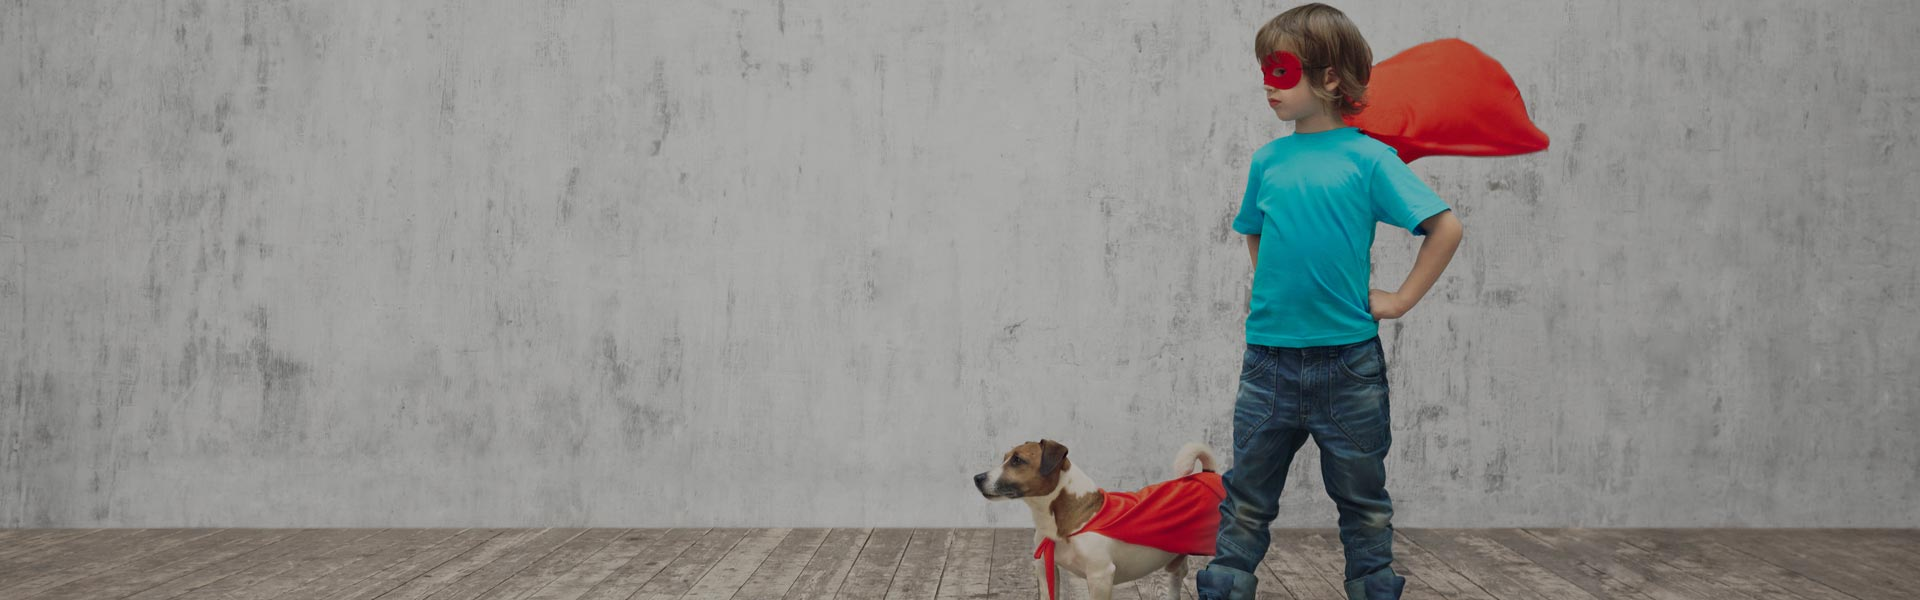 terrier and small child wearing capes making superhero poses